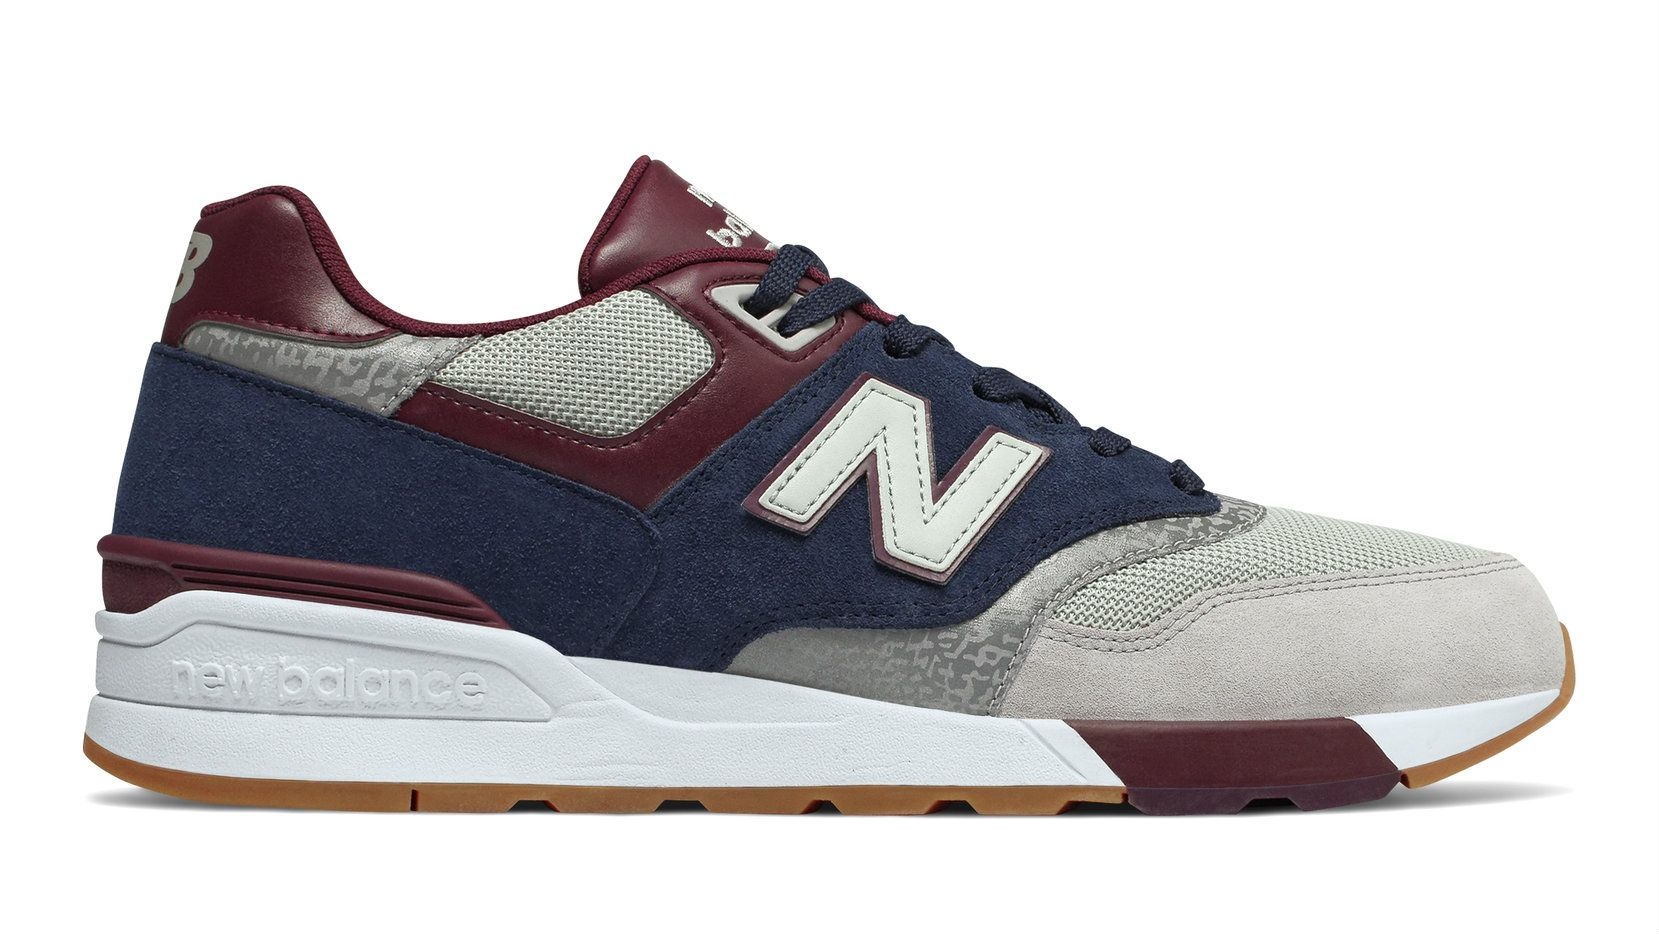 newest 73e37 f3ae9 New Balance 597